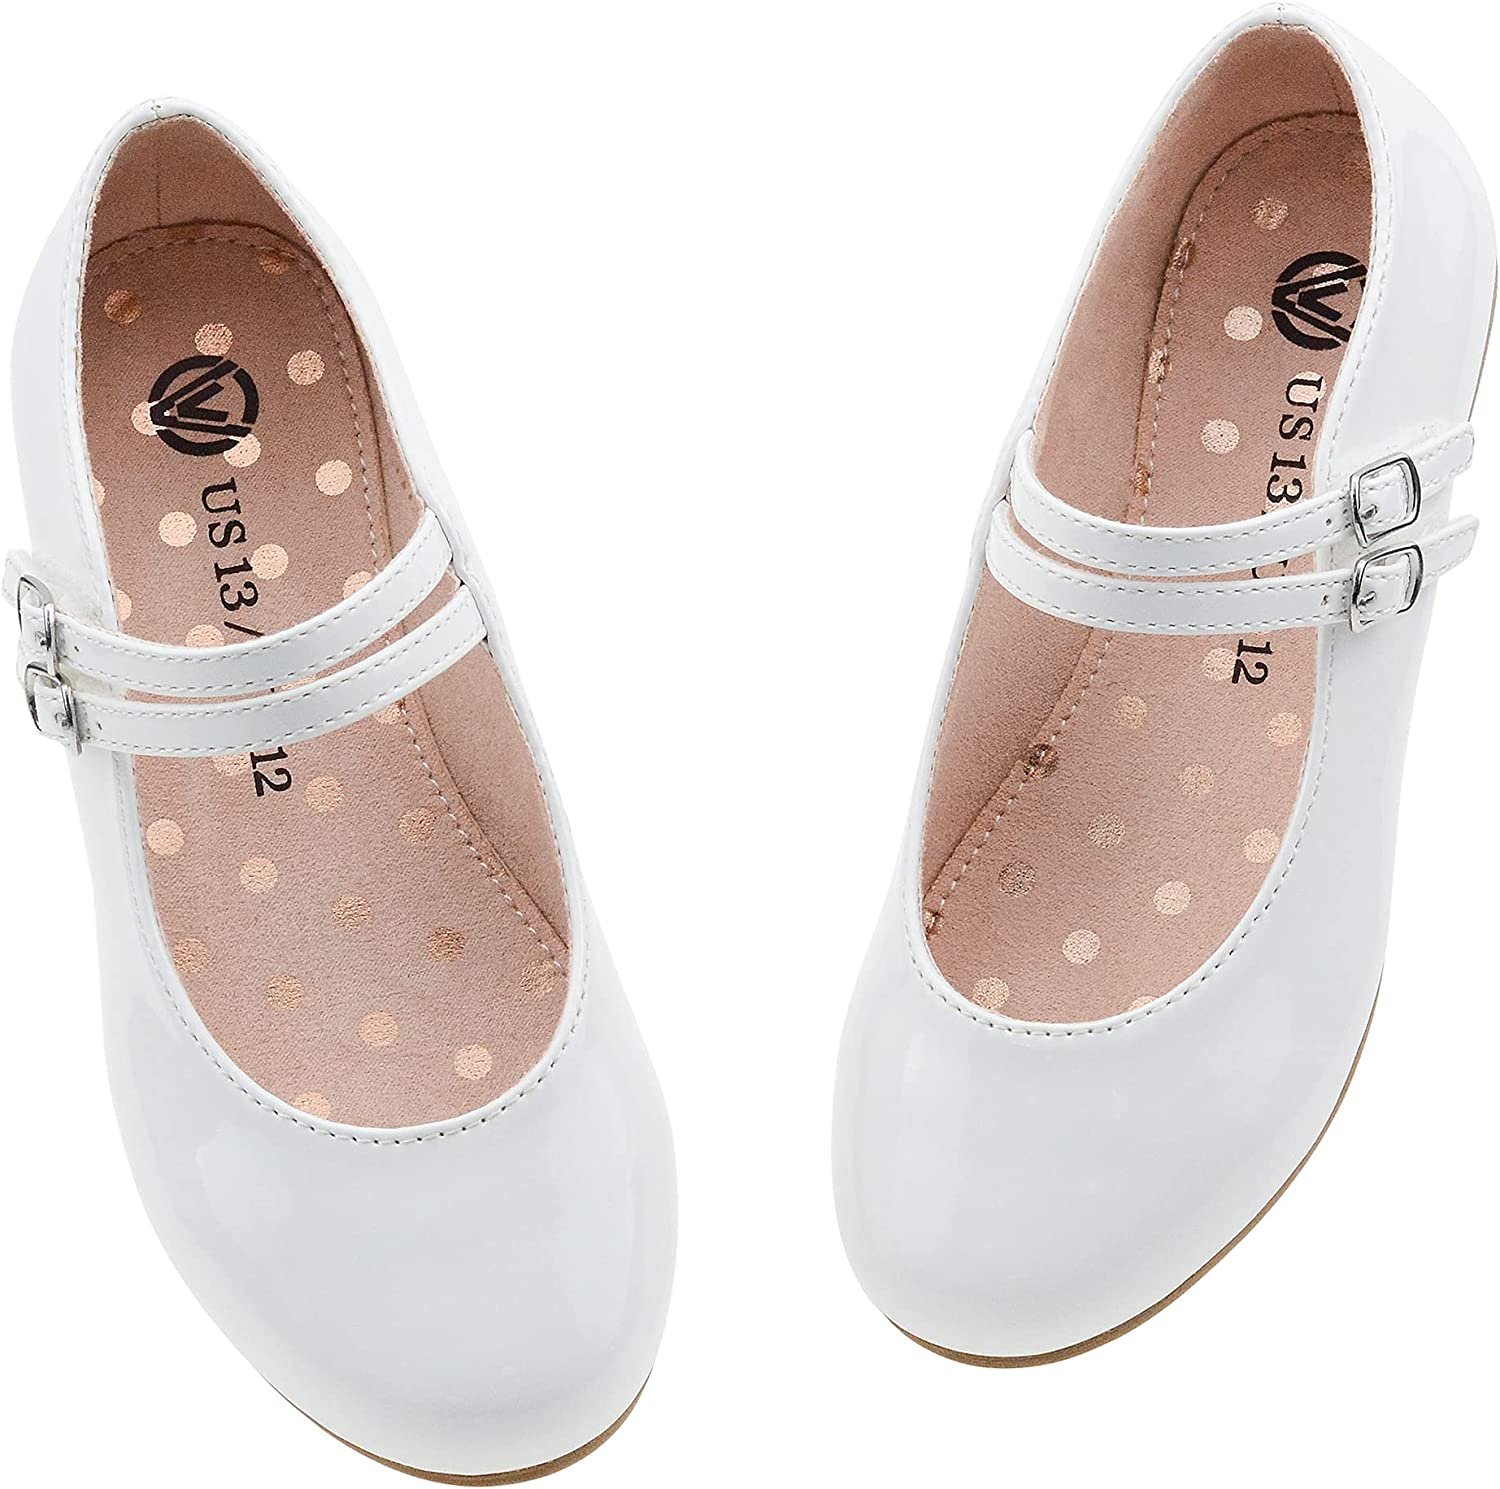 LseLom Girls Dress Shoes Low Heel Mary Jane Princess Hook and Loop Dance Shoes Party Wedding Flats for Little/Big Kids